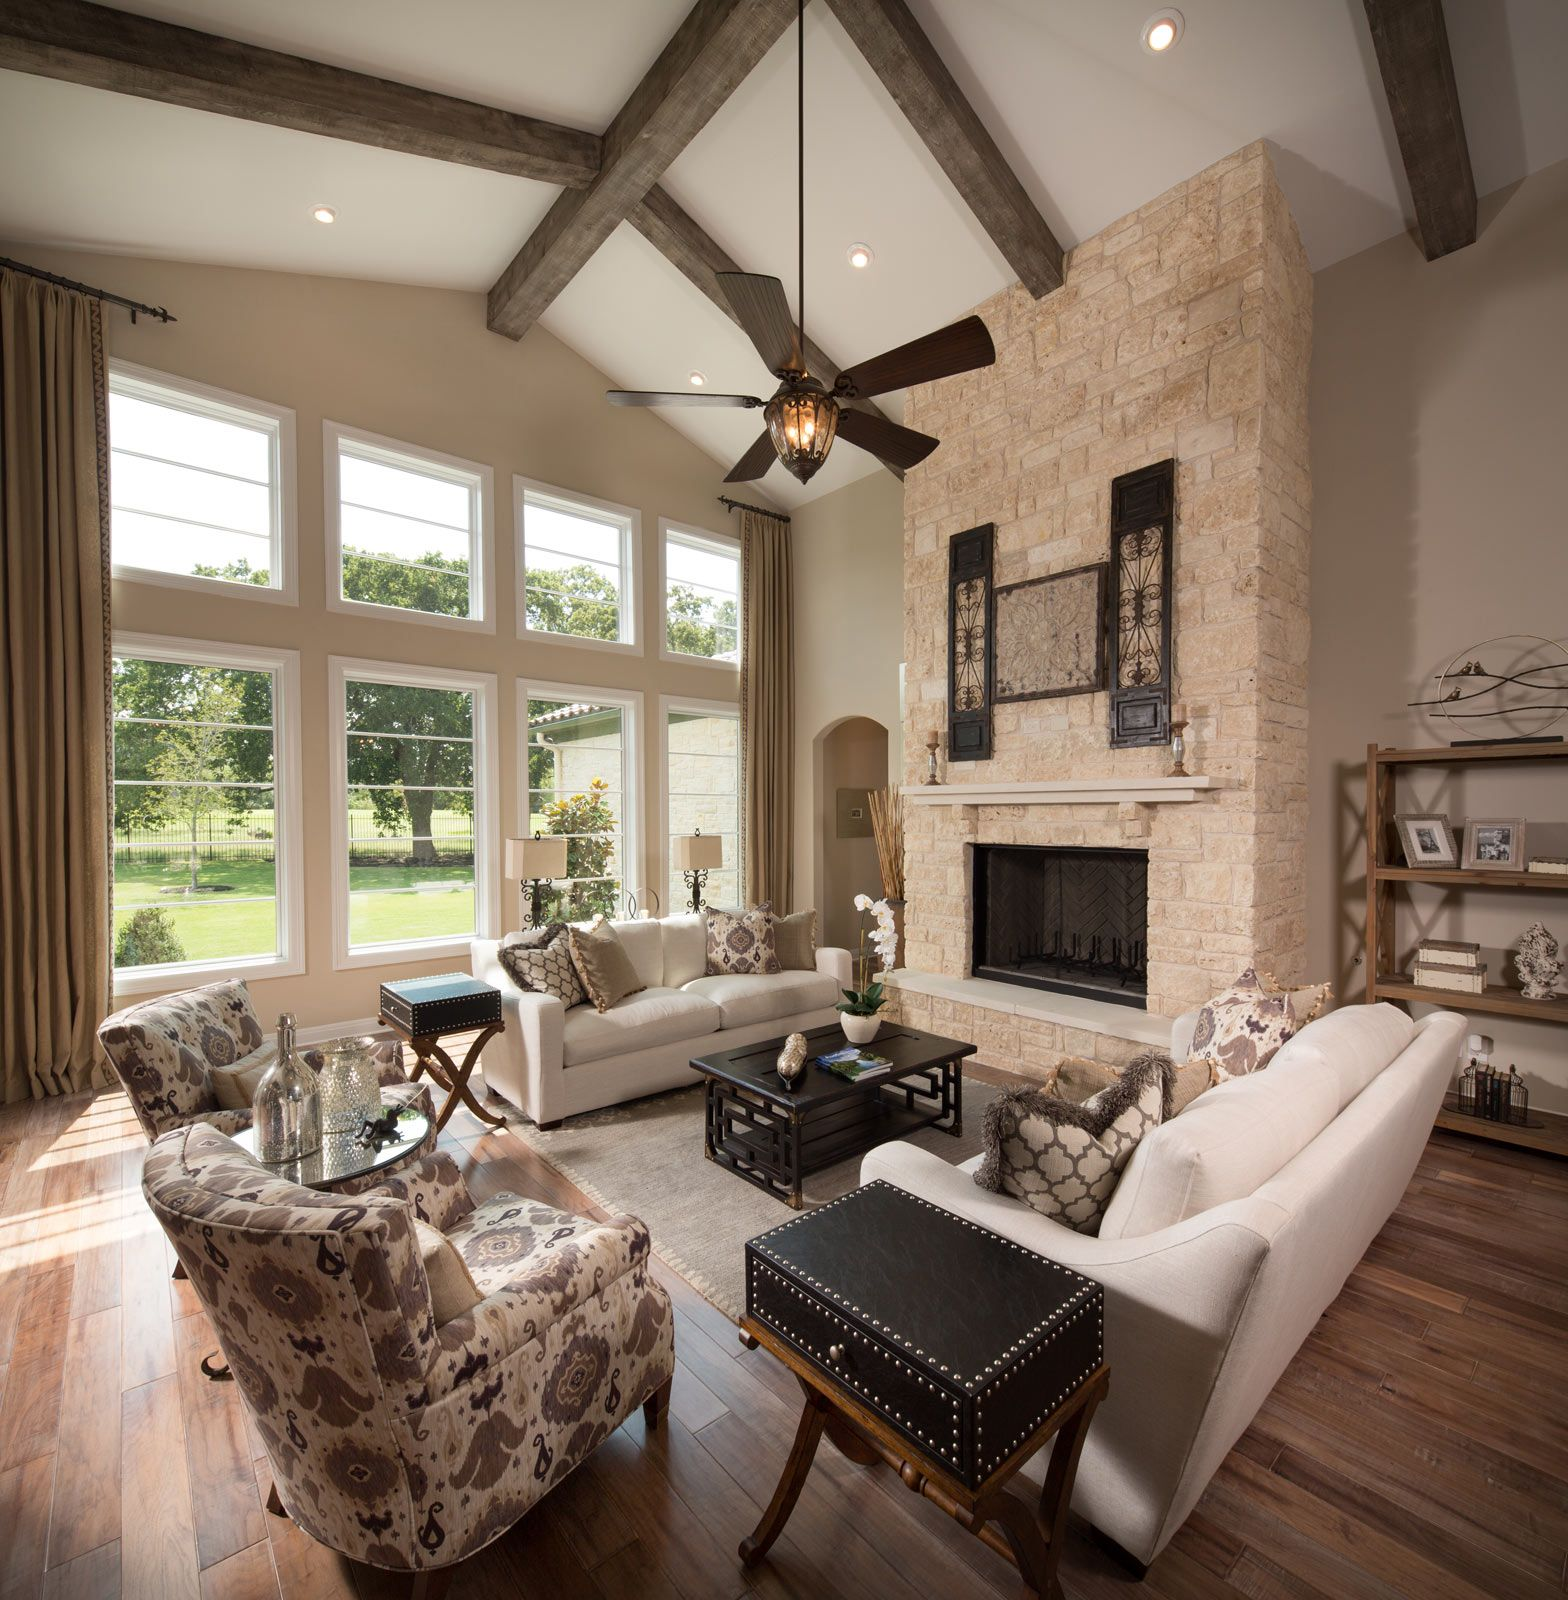 The Big Windows And Exposed Beams Bring Character And Light To